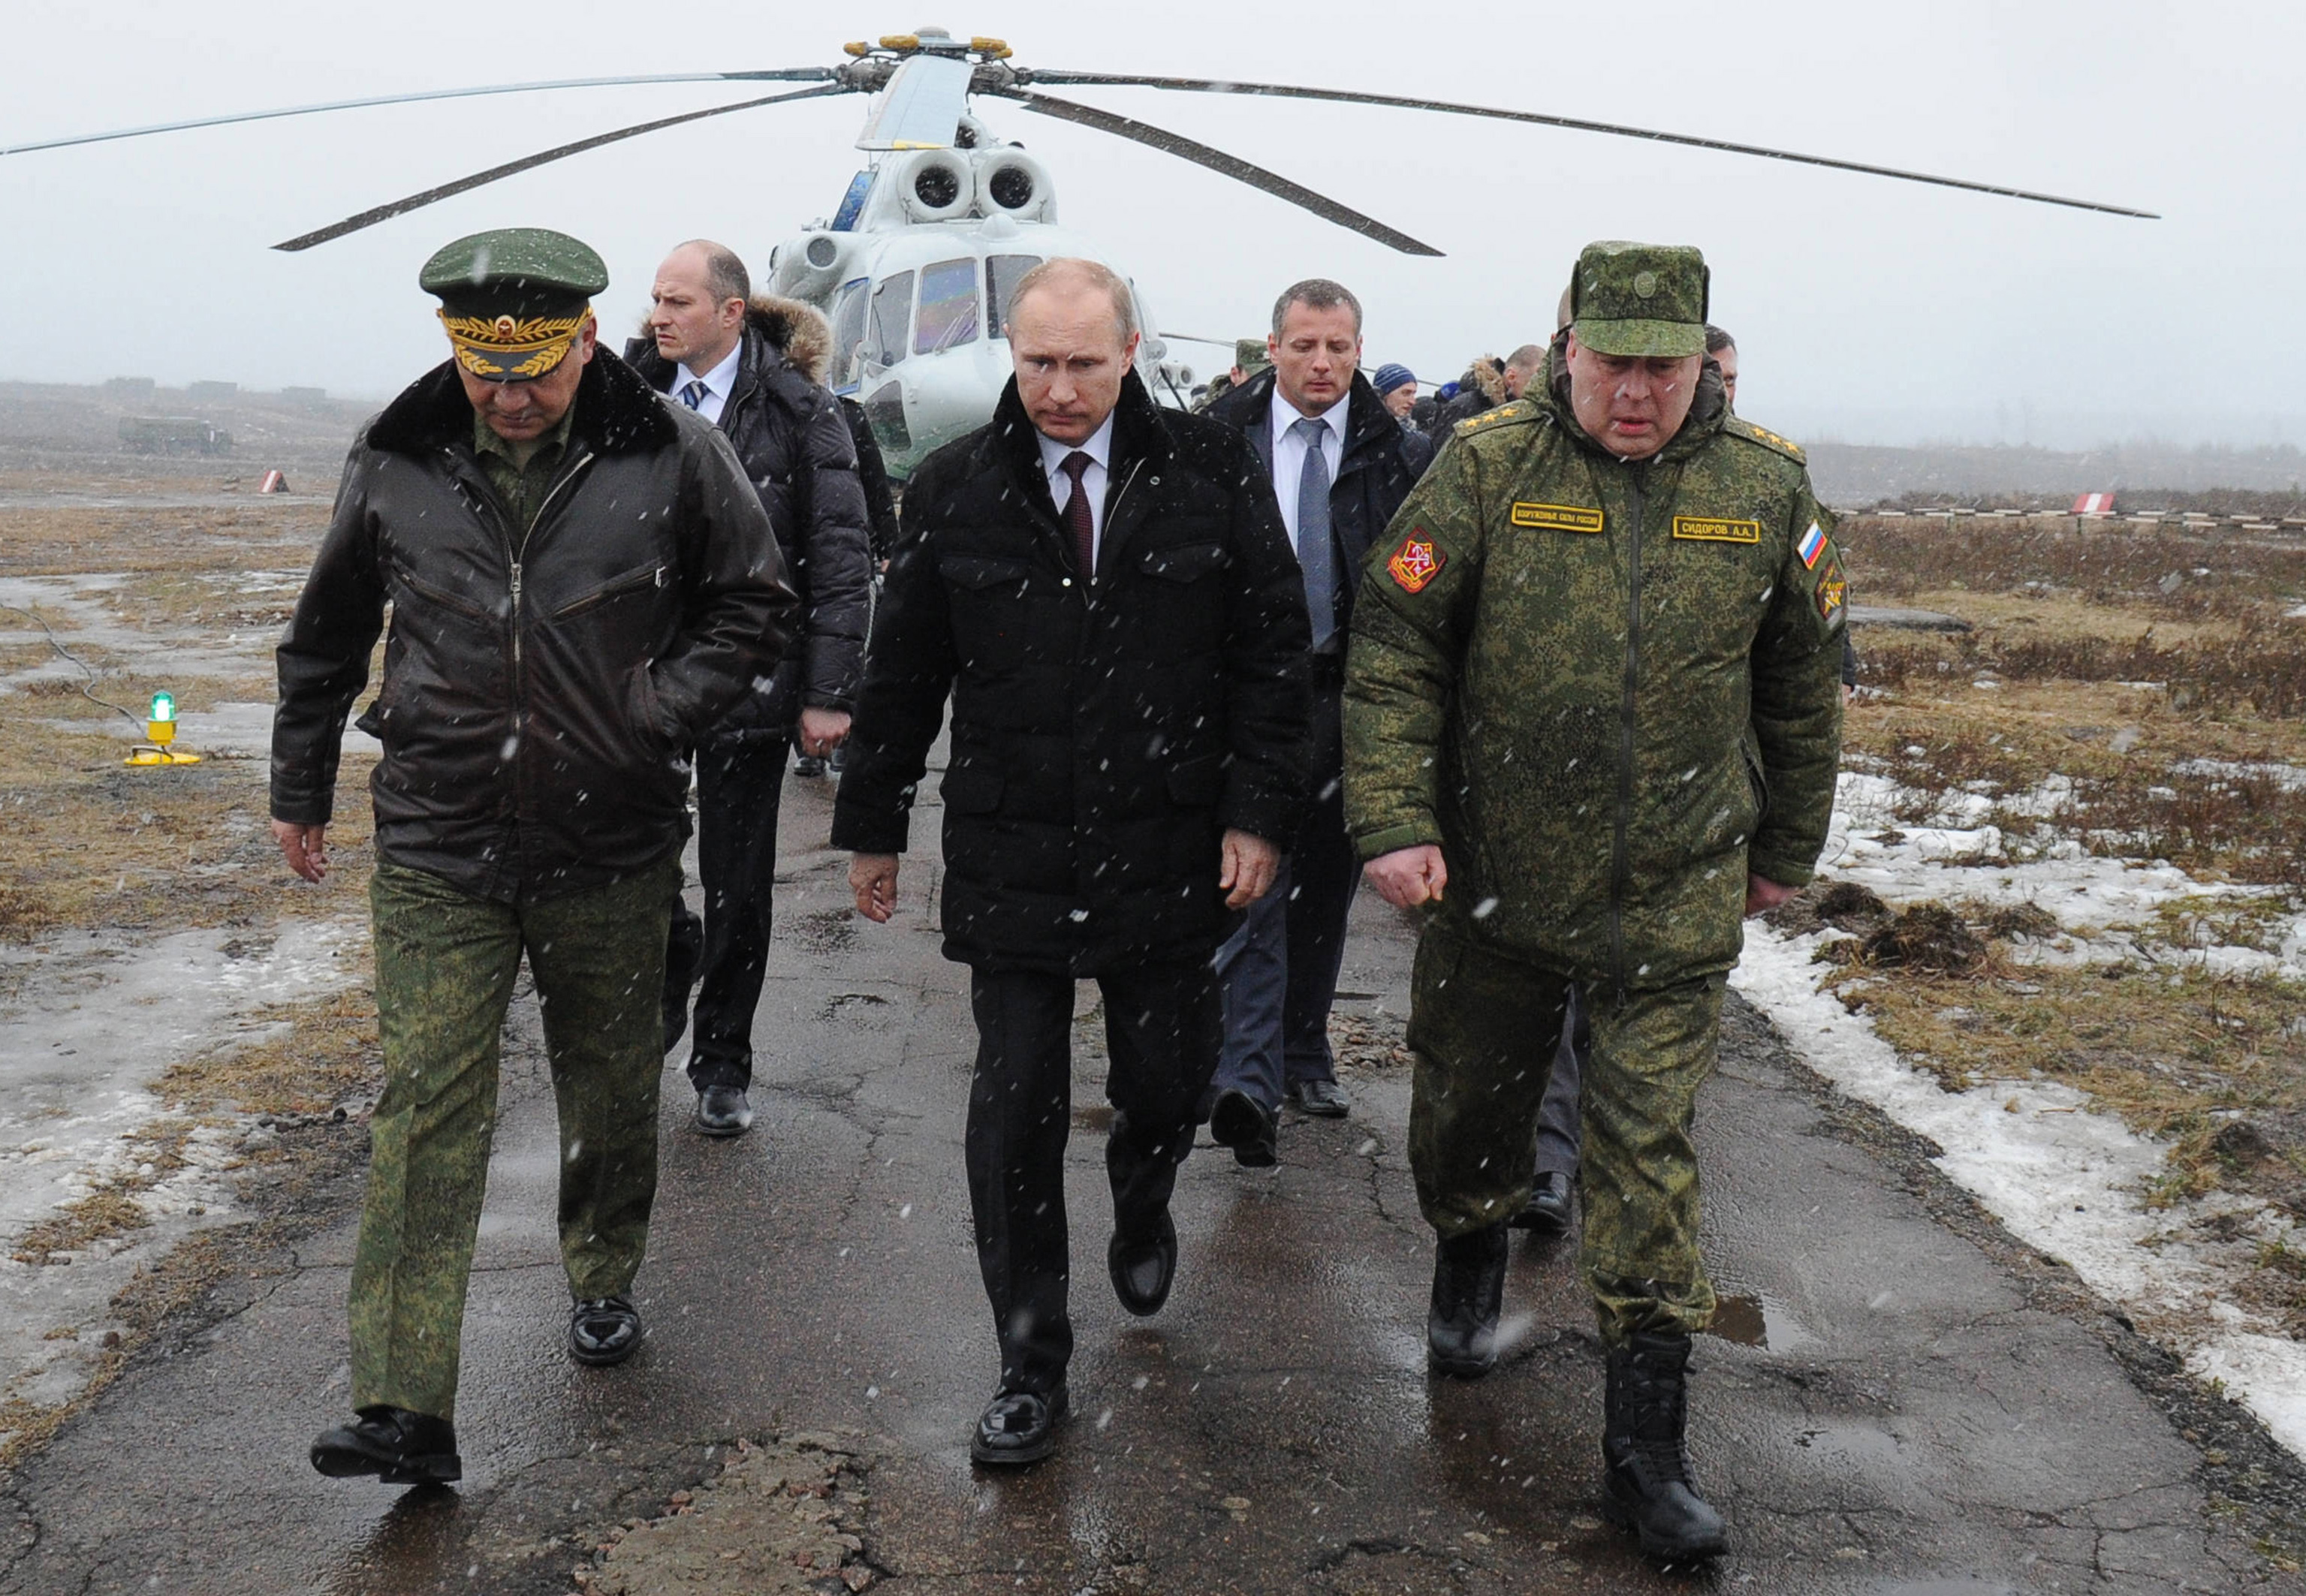 Vladimir Putin inspects Russian army drills near Leningrad in March. A vast majority of Americans view Putin as dishonest and untrustworthy, according to a new poll